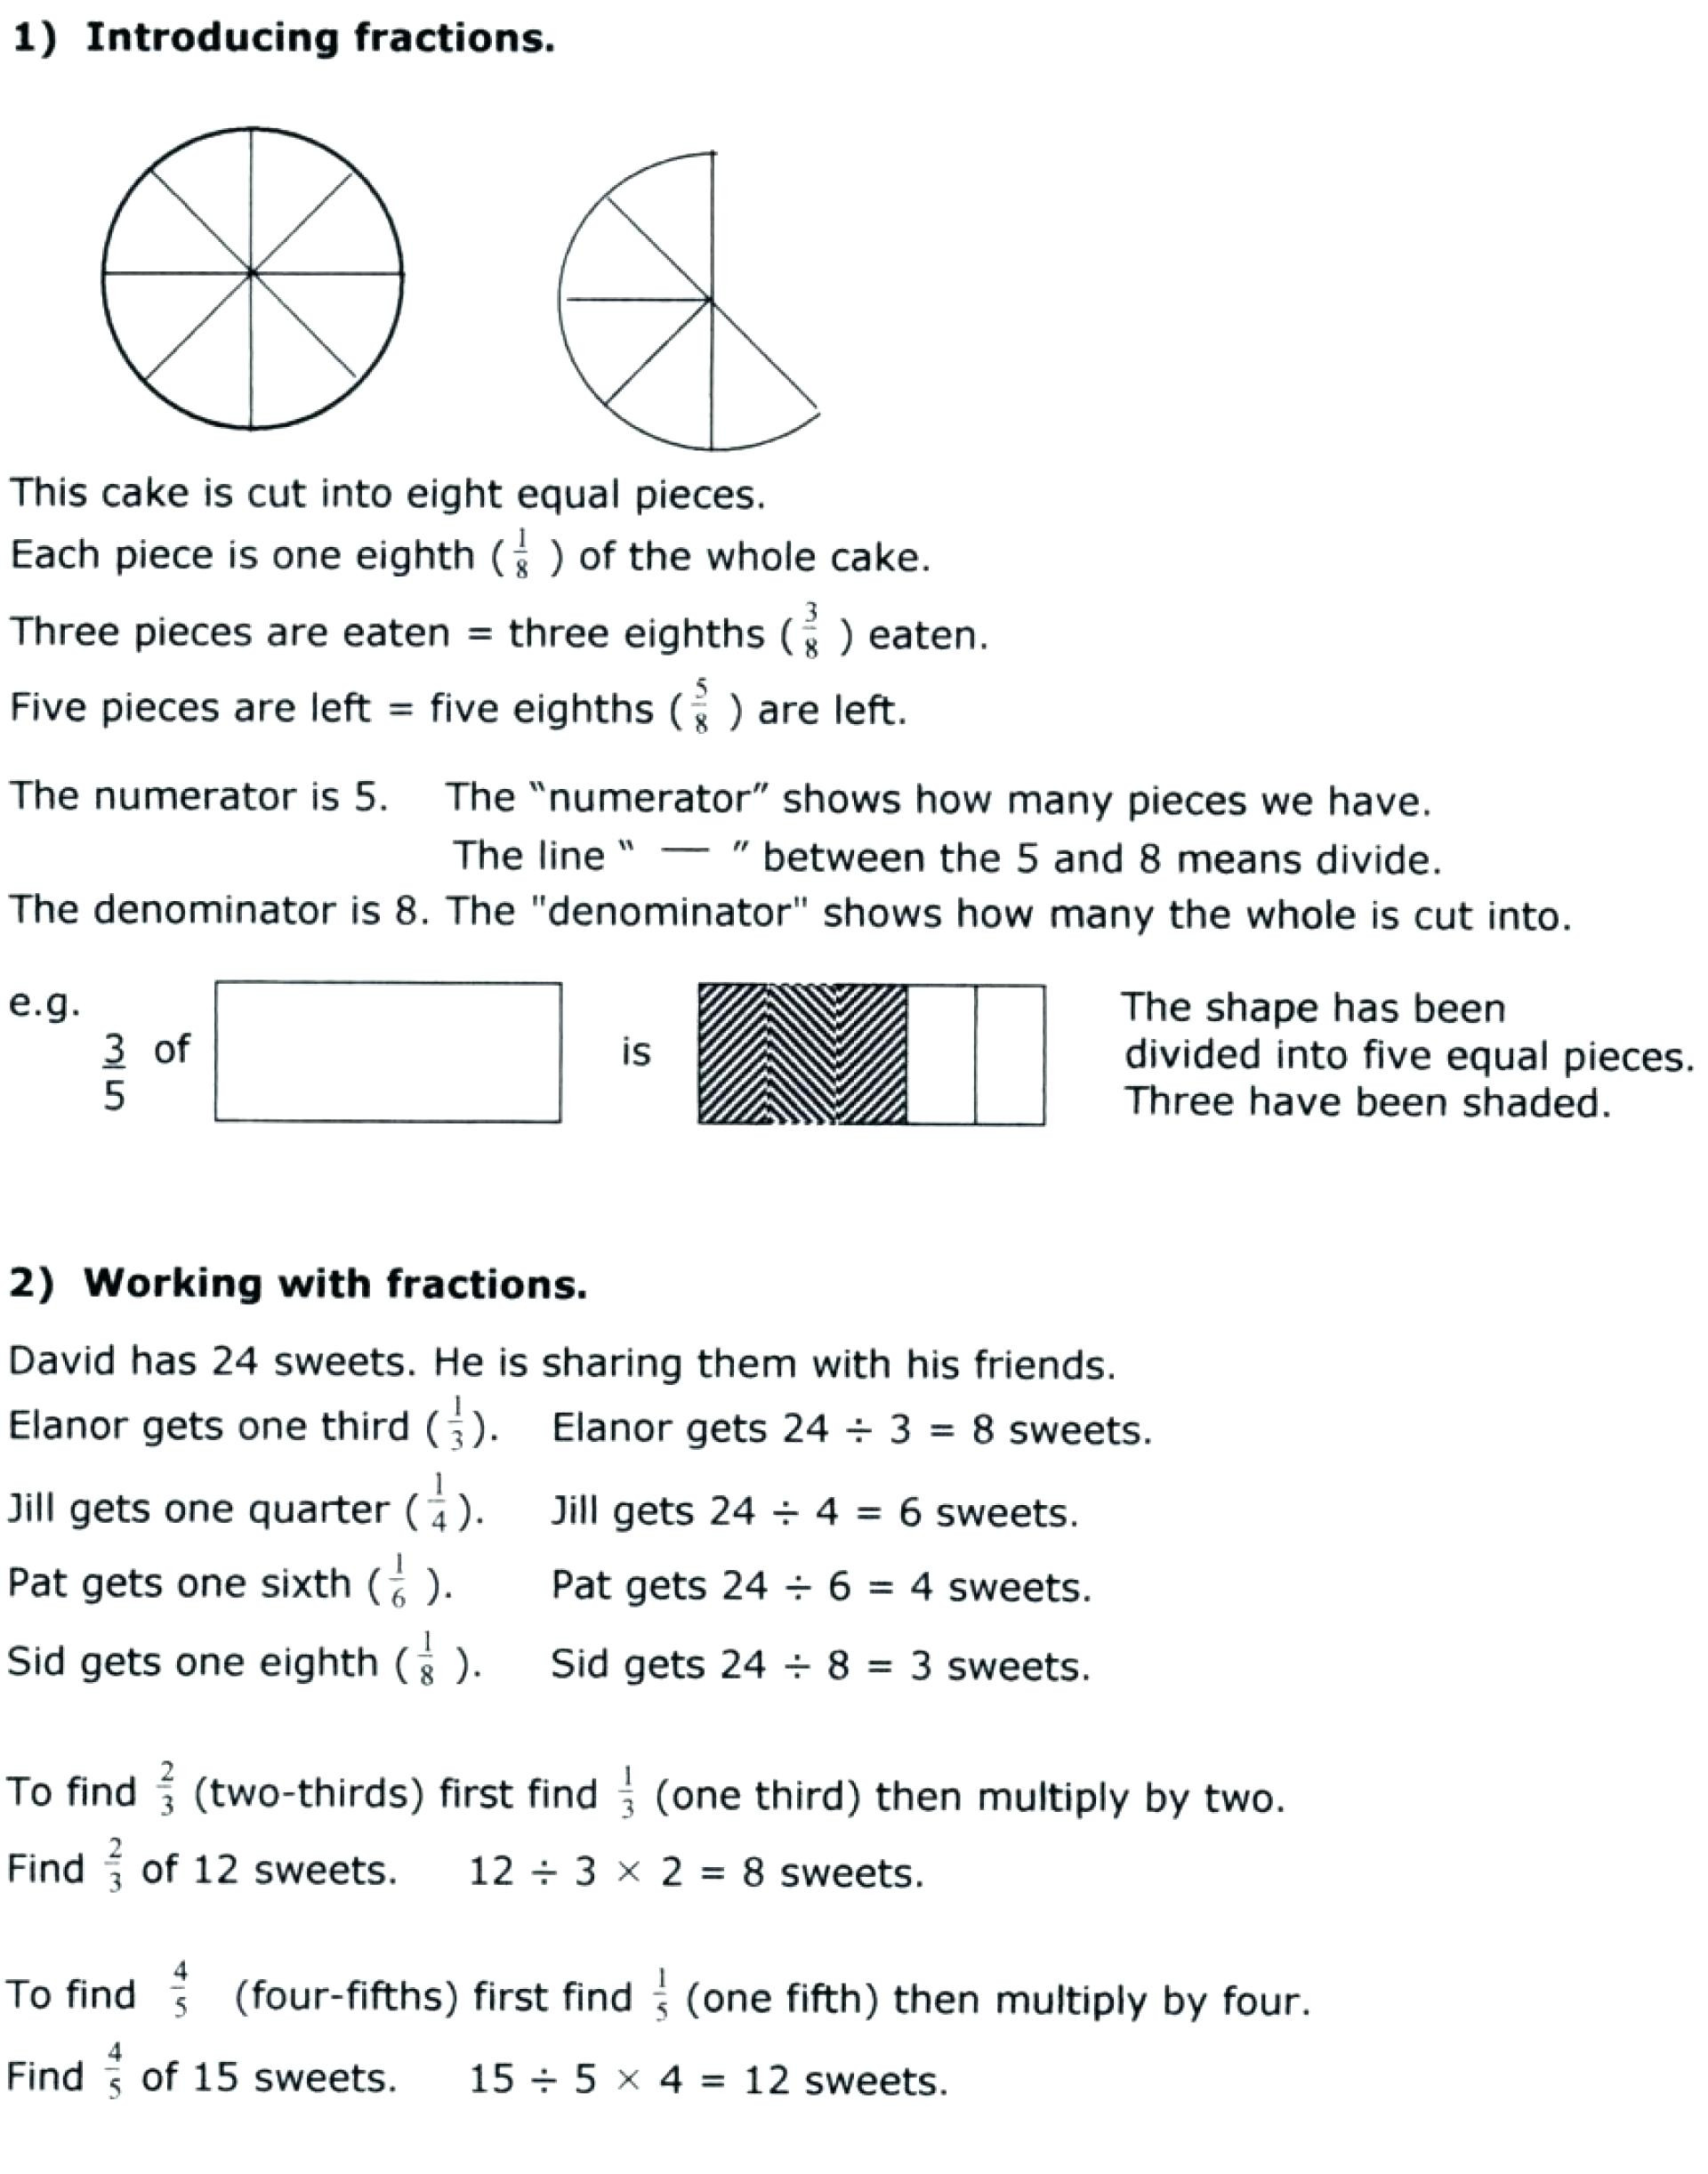 hight resolution of 5 Free Math Worksheets First Grade 1 Subtraction Subtracting From whole Ten  - apocalomegaproductions.com